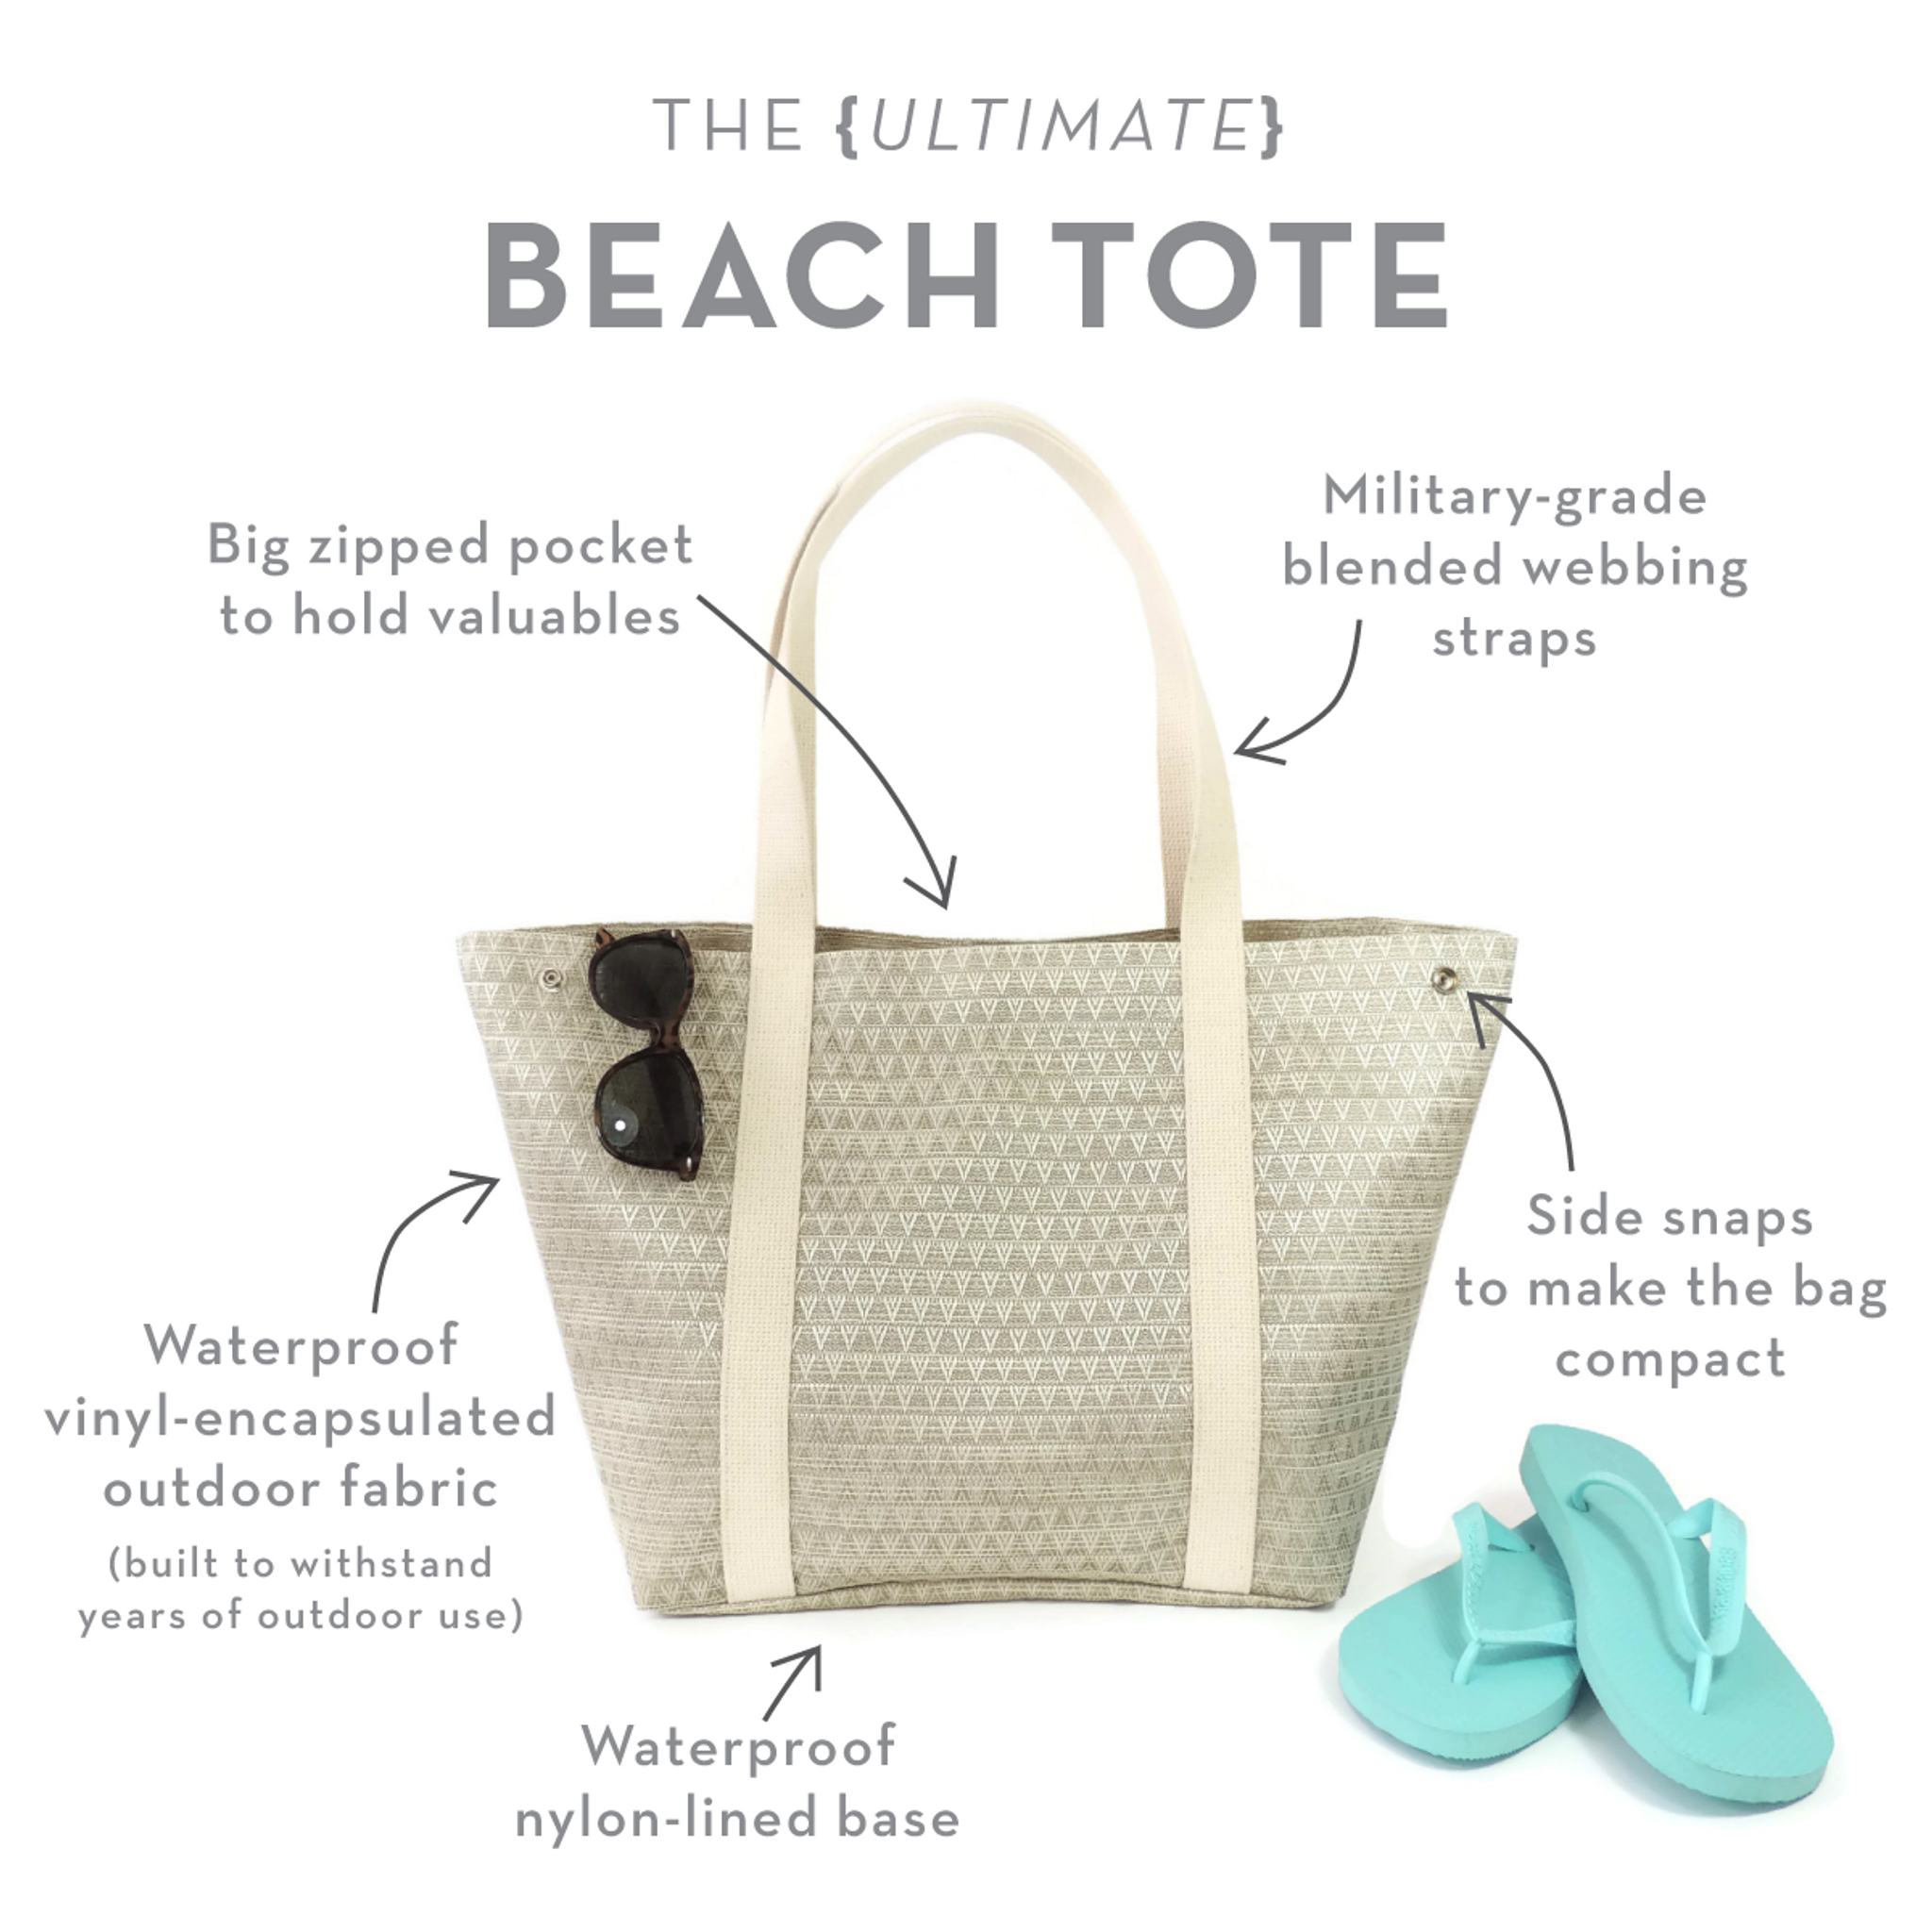 Beach Tote infographic